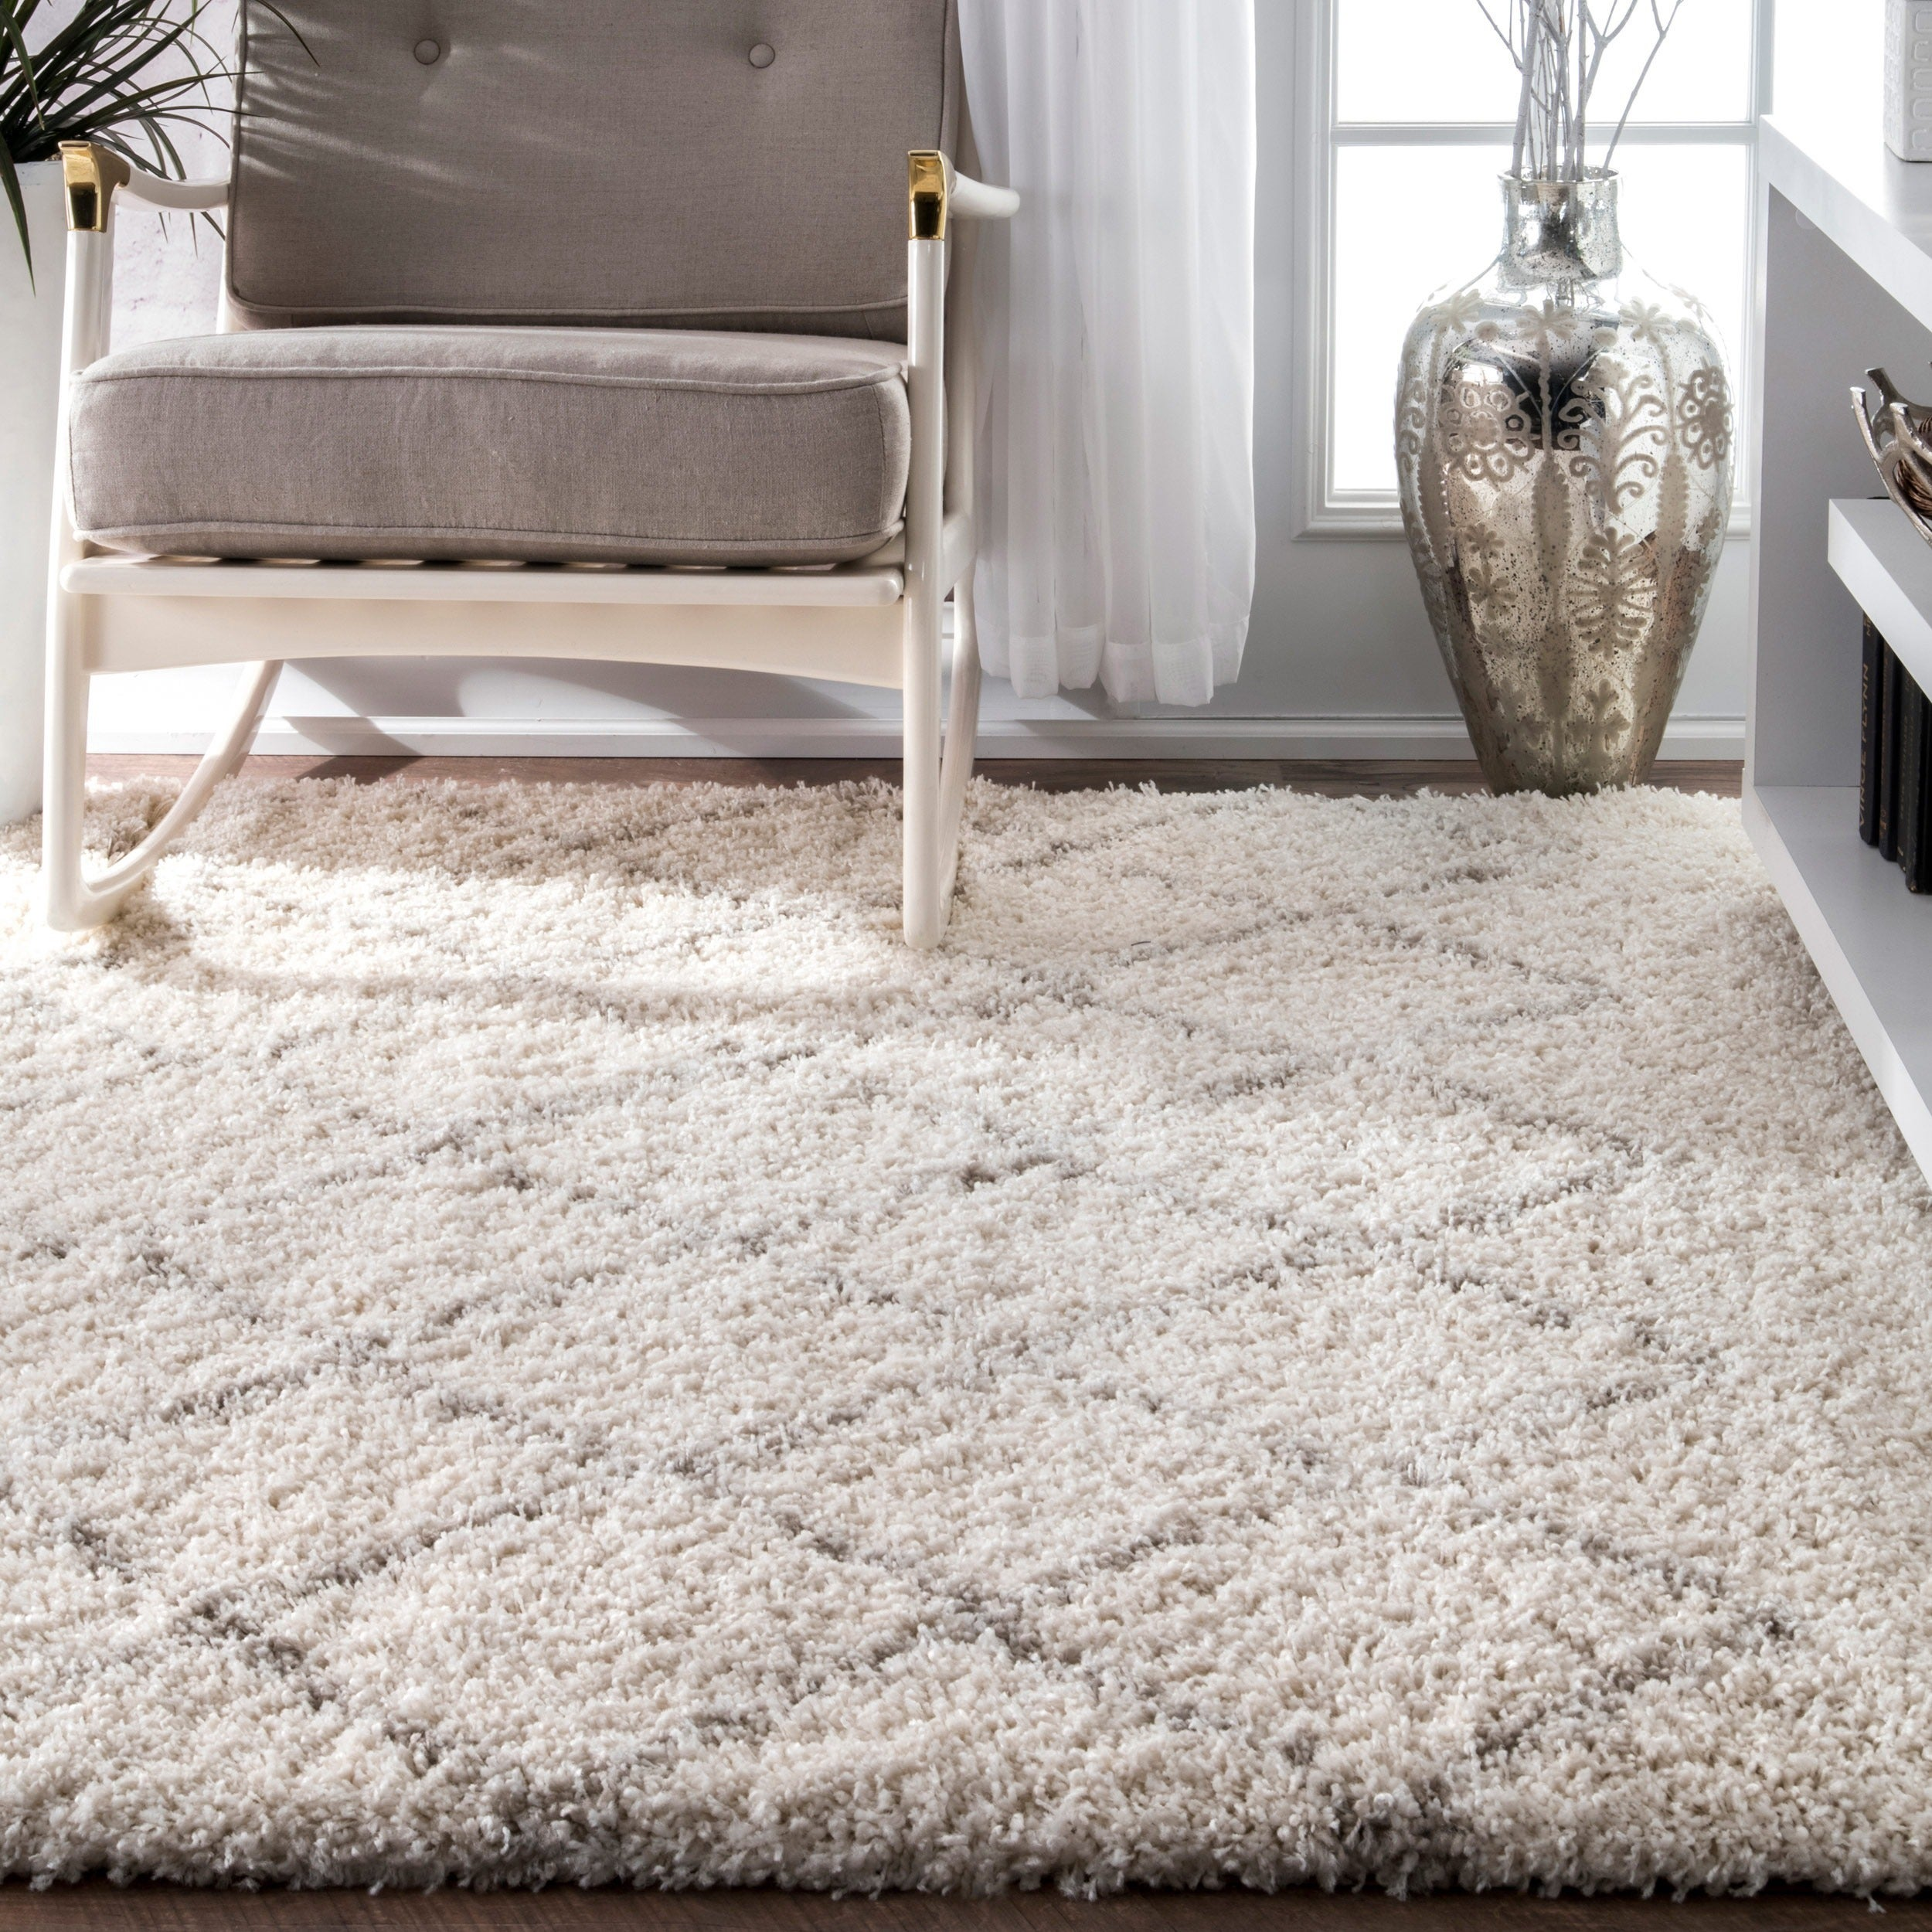 Nuloom Soft And Plush Moroccan Trellis Natural Rug 7 6 X 9 Free Shipping Today 17605174